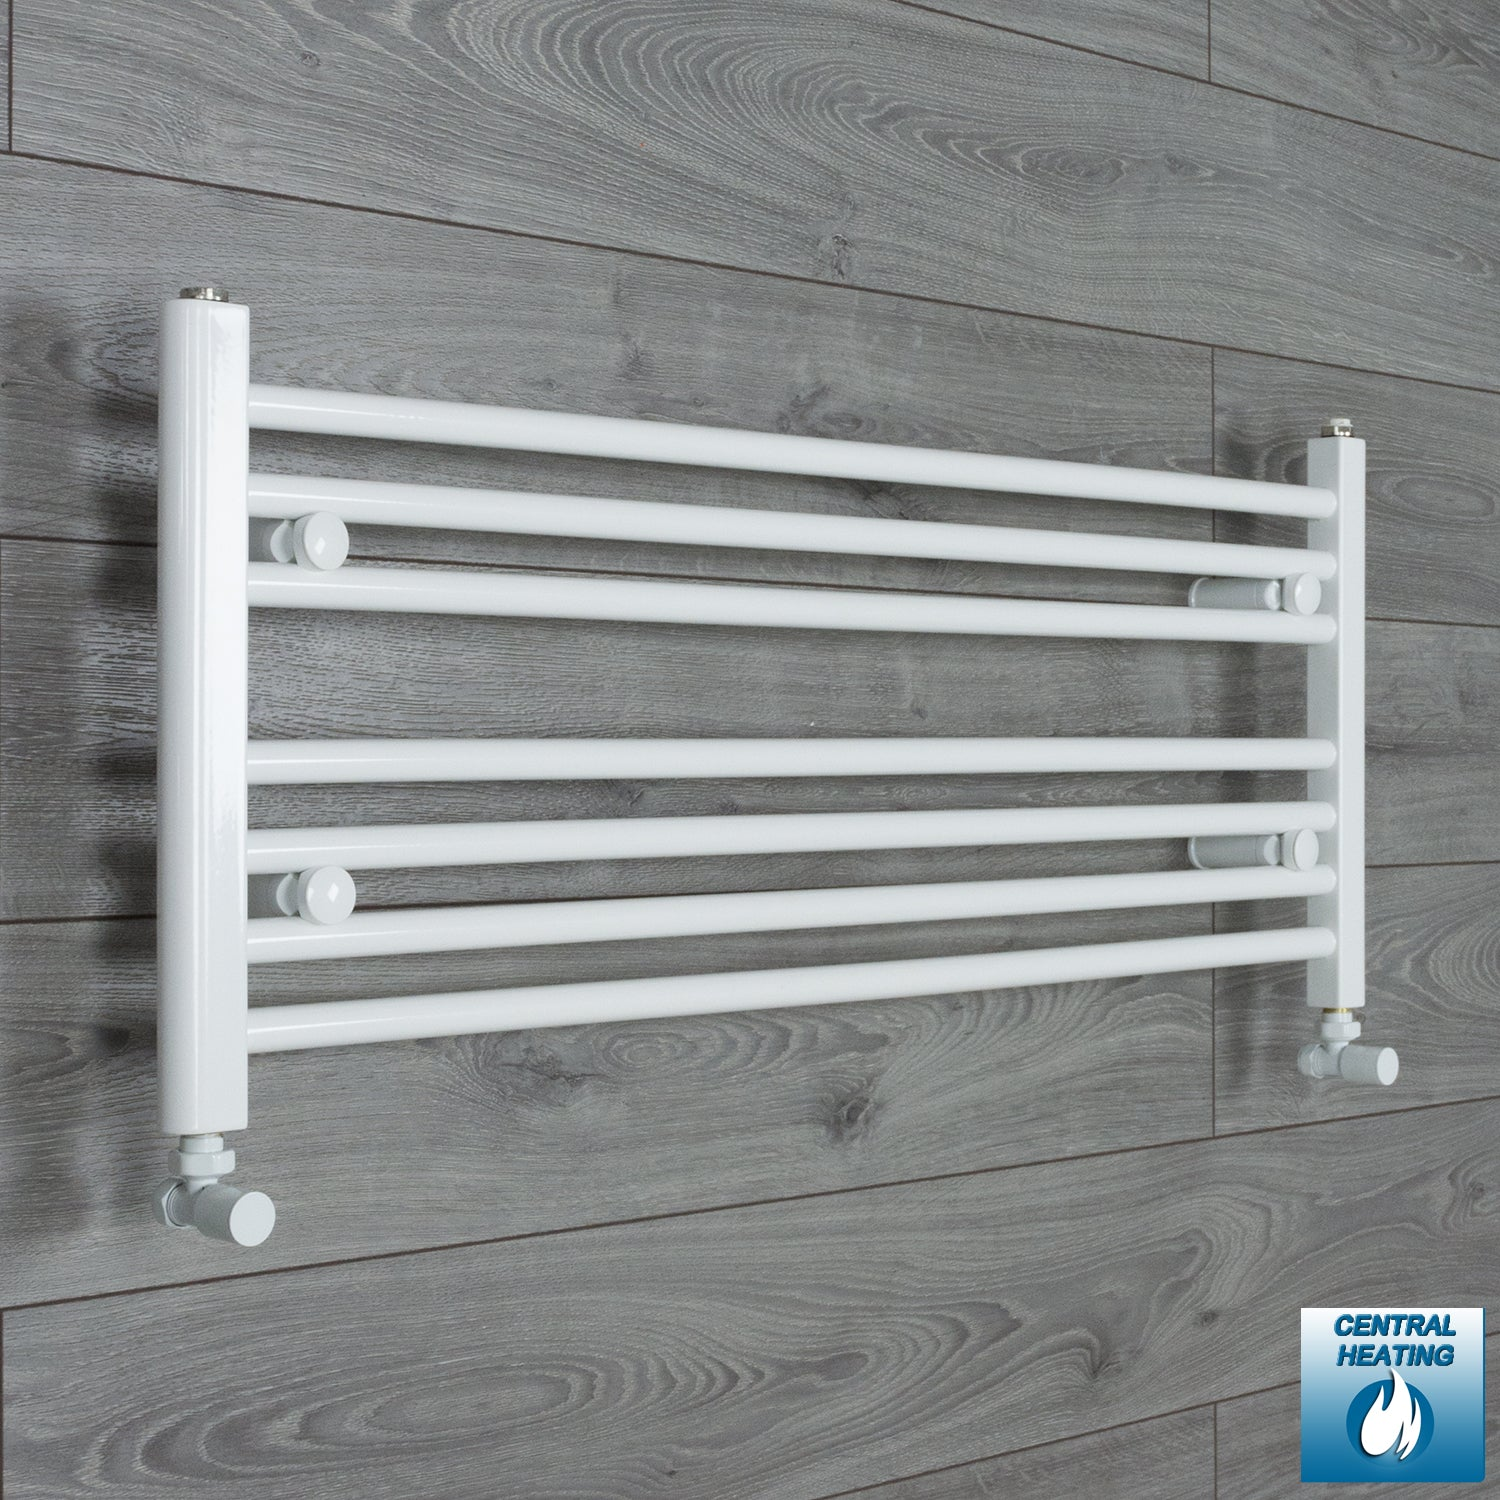 1000mm x 400mm High White Towel Rail Radiator With Angled Valve